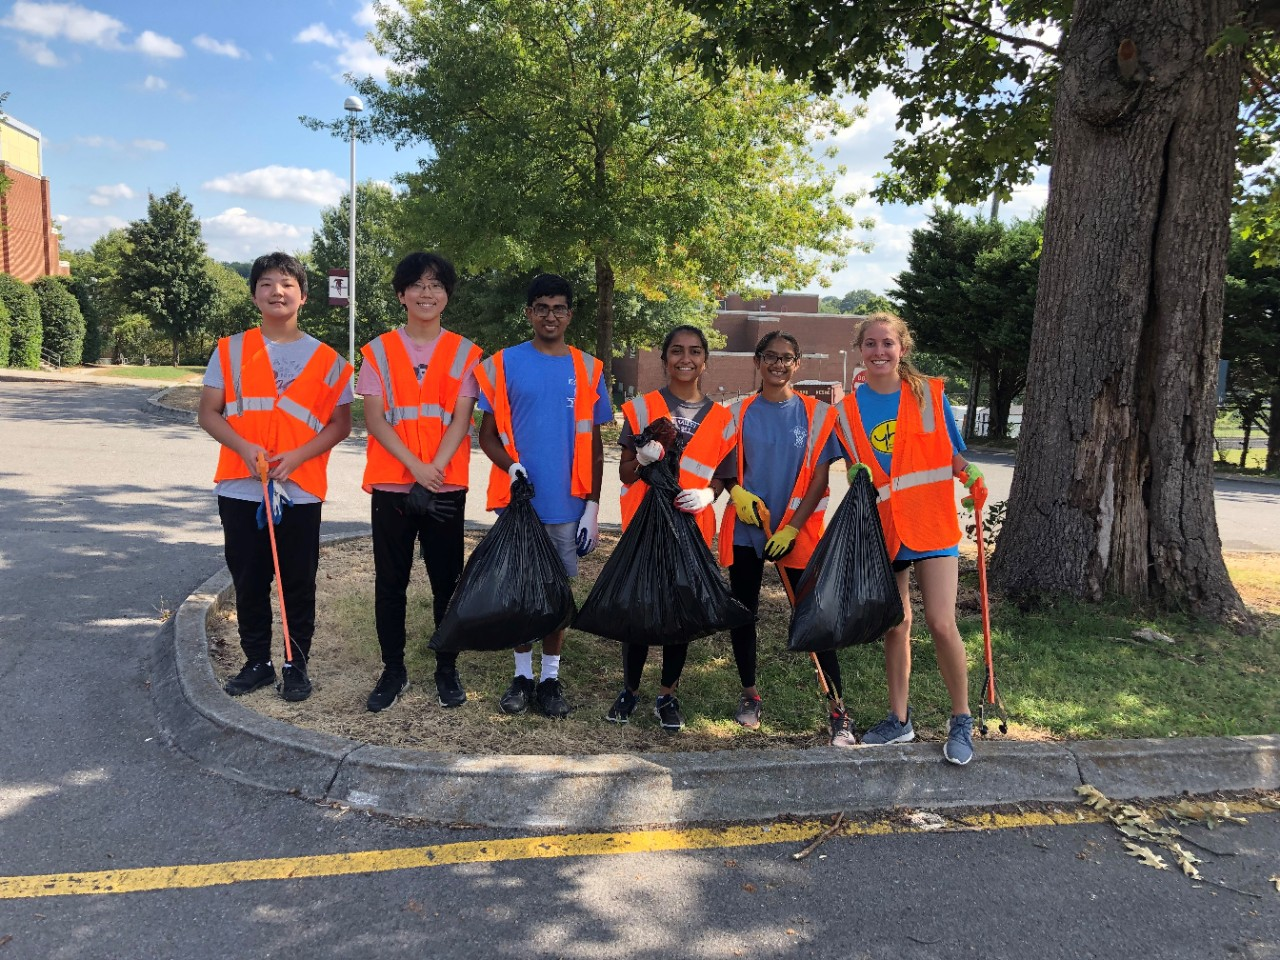 North Knoxville Cleanup